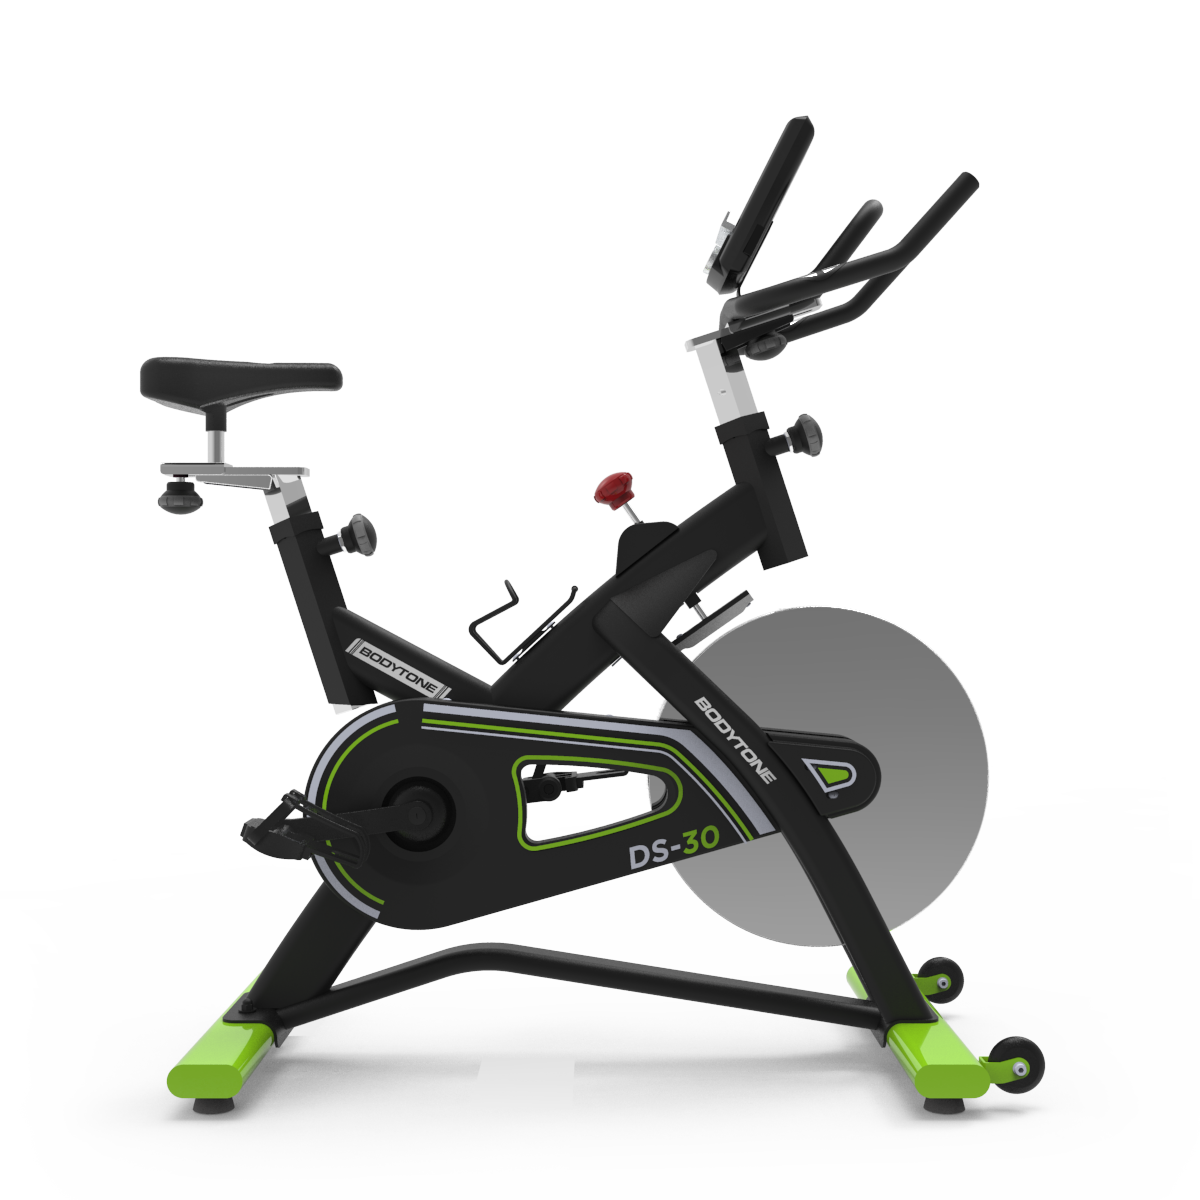 Bicicleta Indoor Cycling Bodytone  Ds35